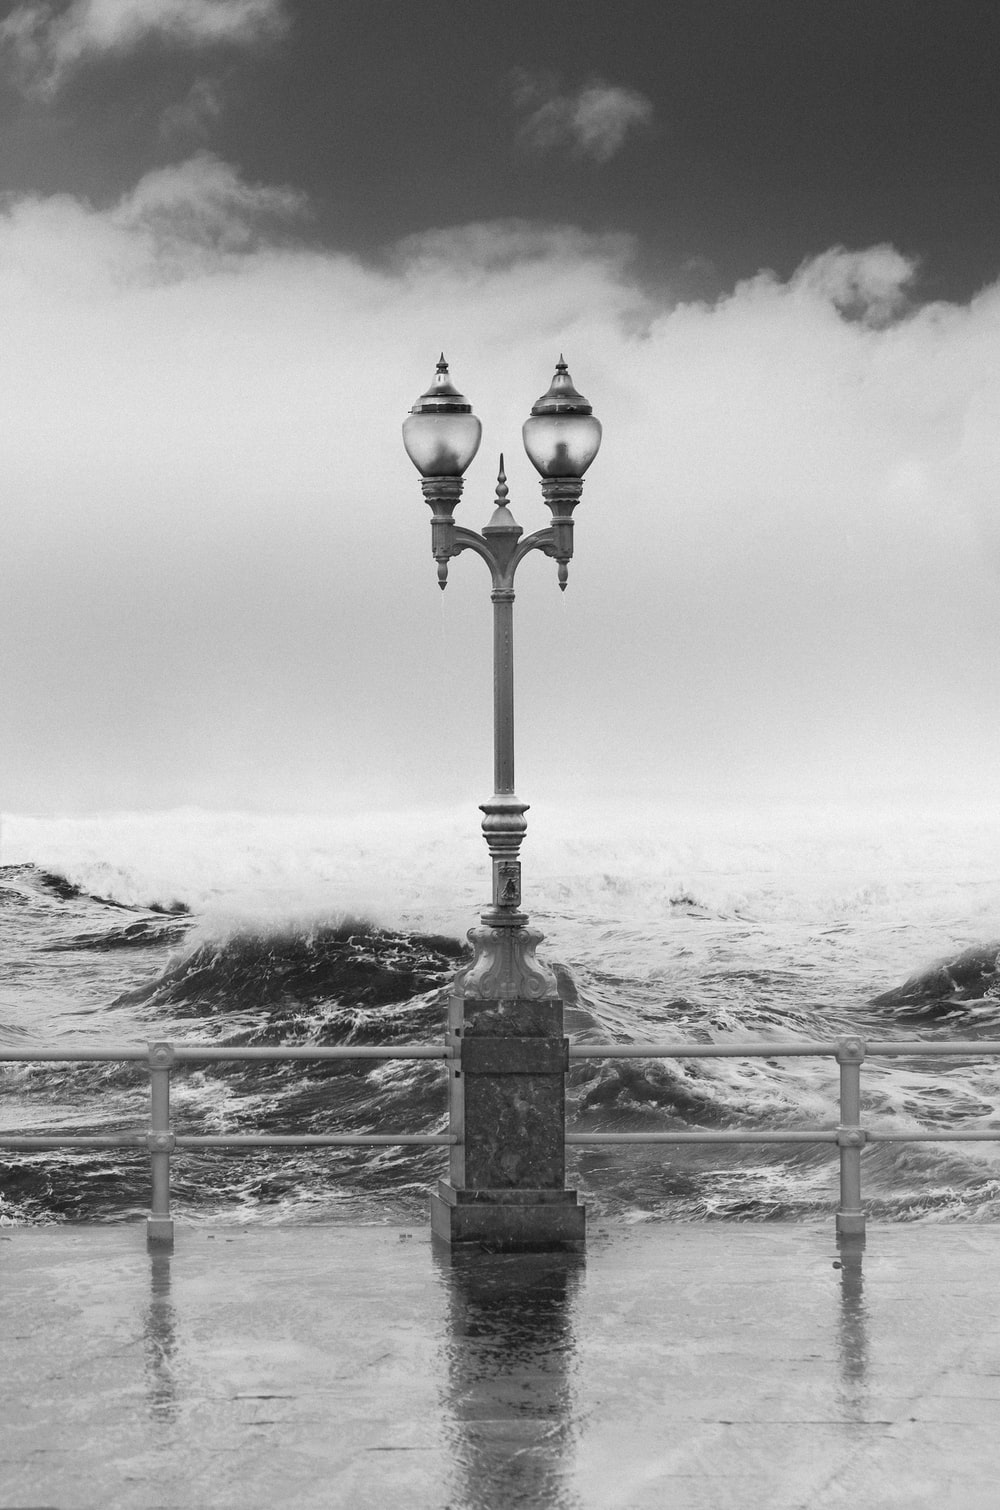 grayscale photography of outdoor lamp near sea